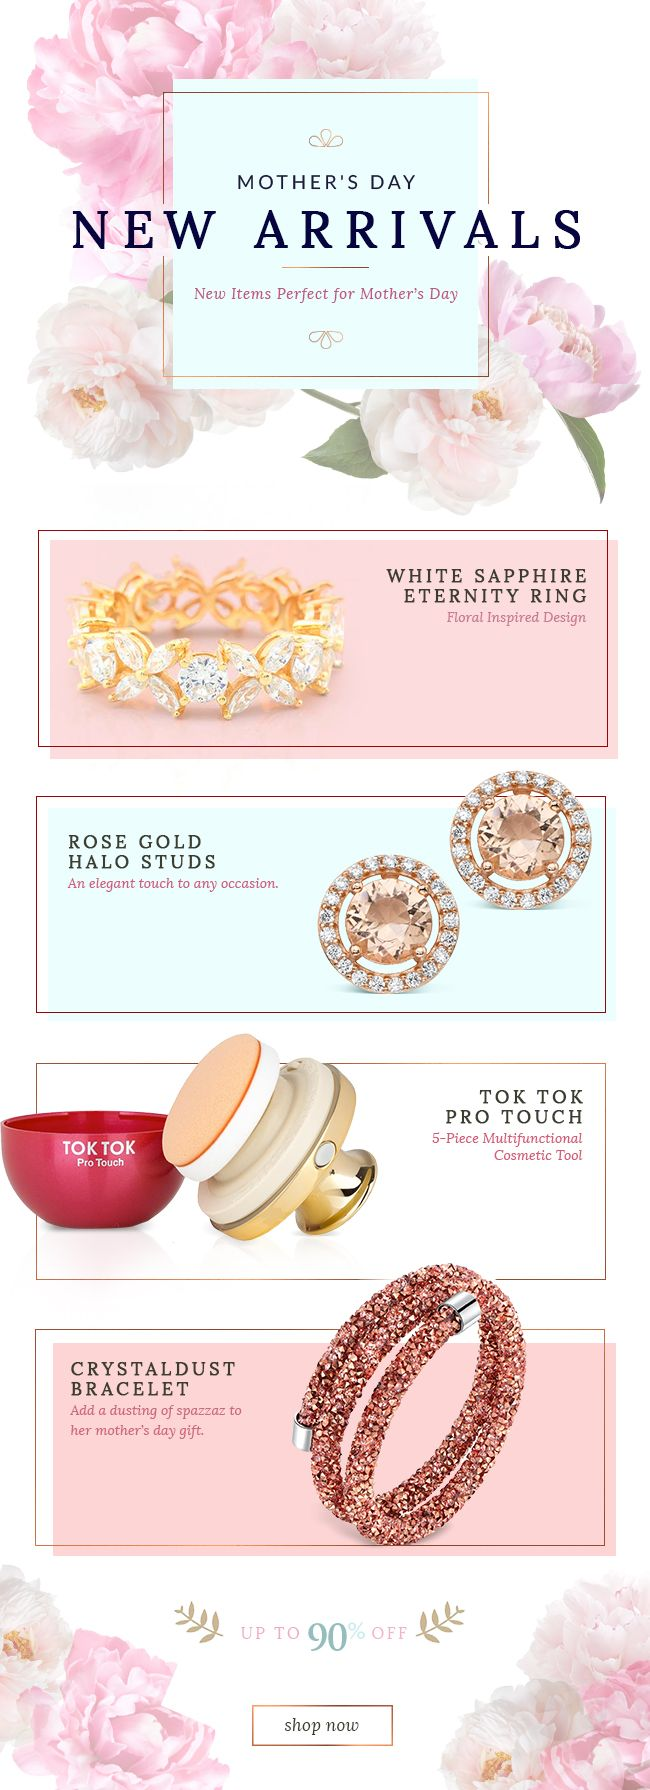 Email design email fashion graphicdesign marketing advertising